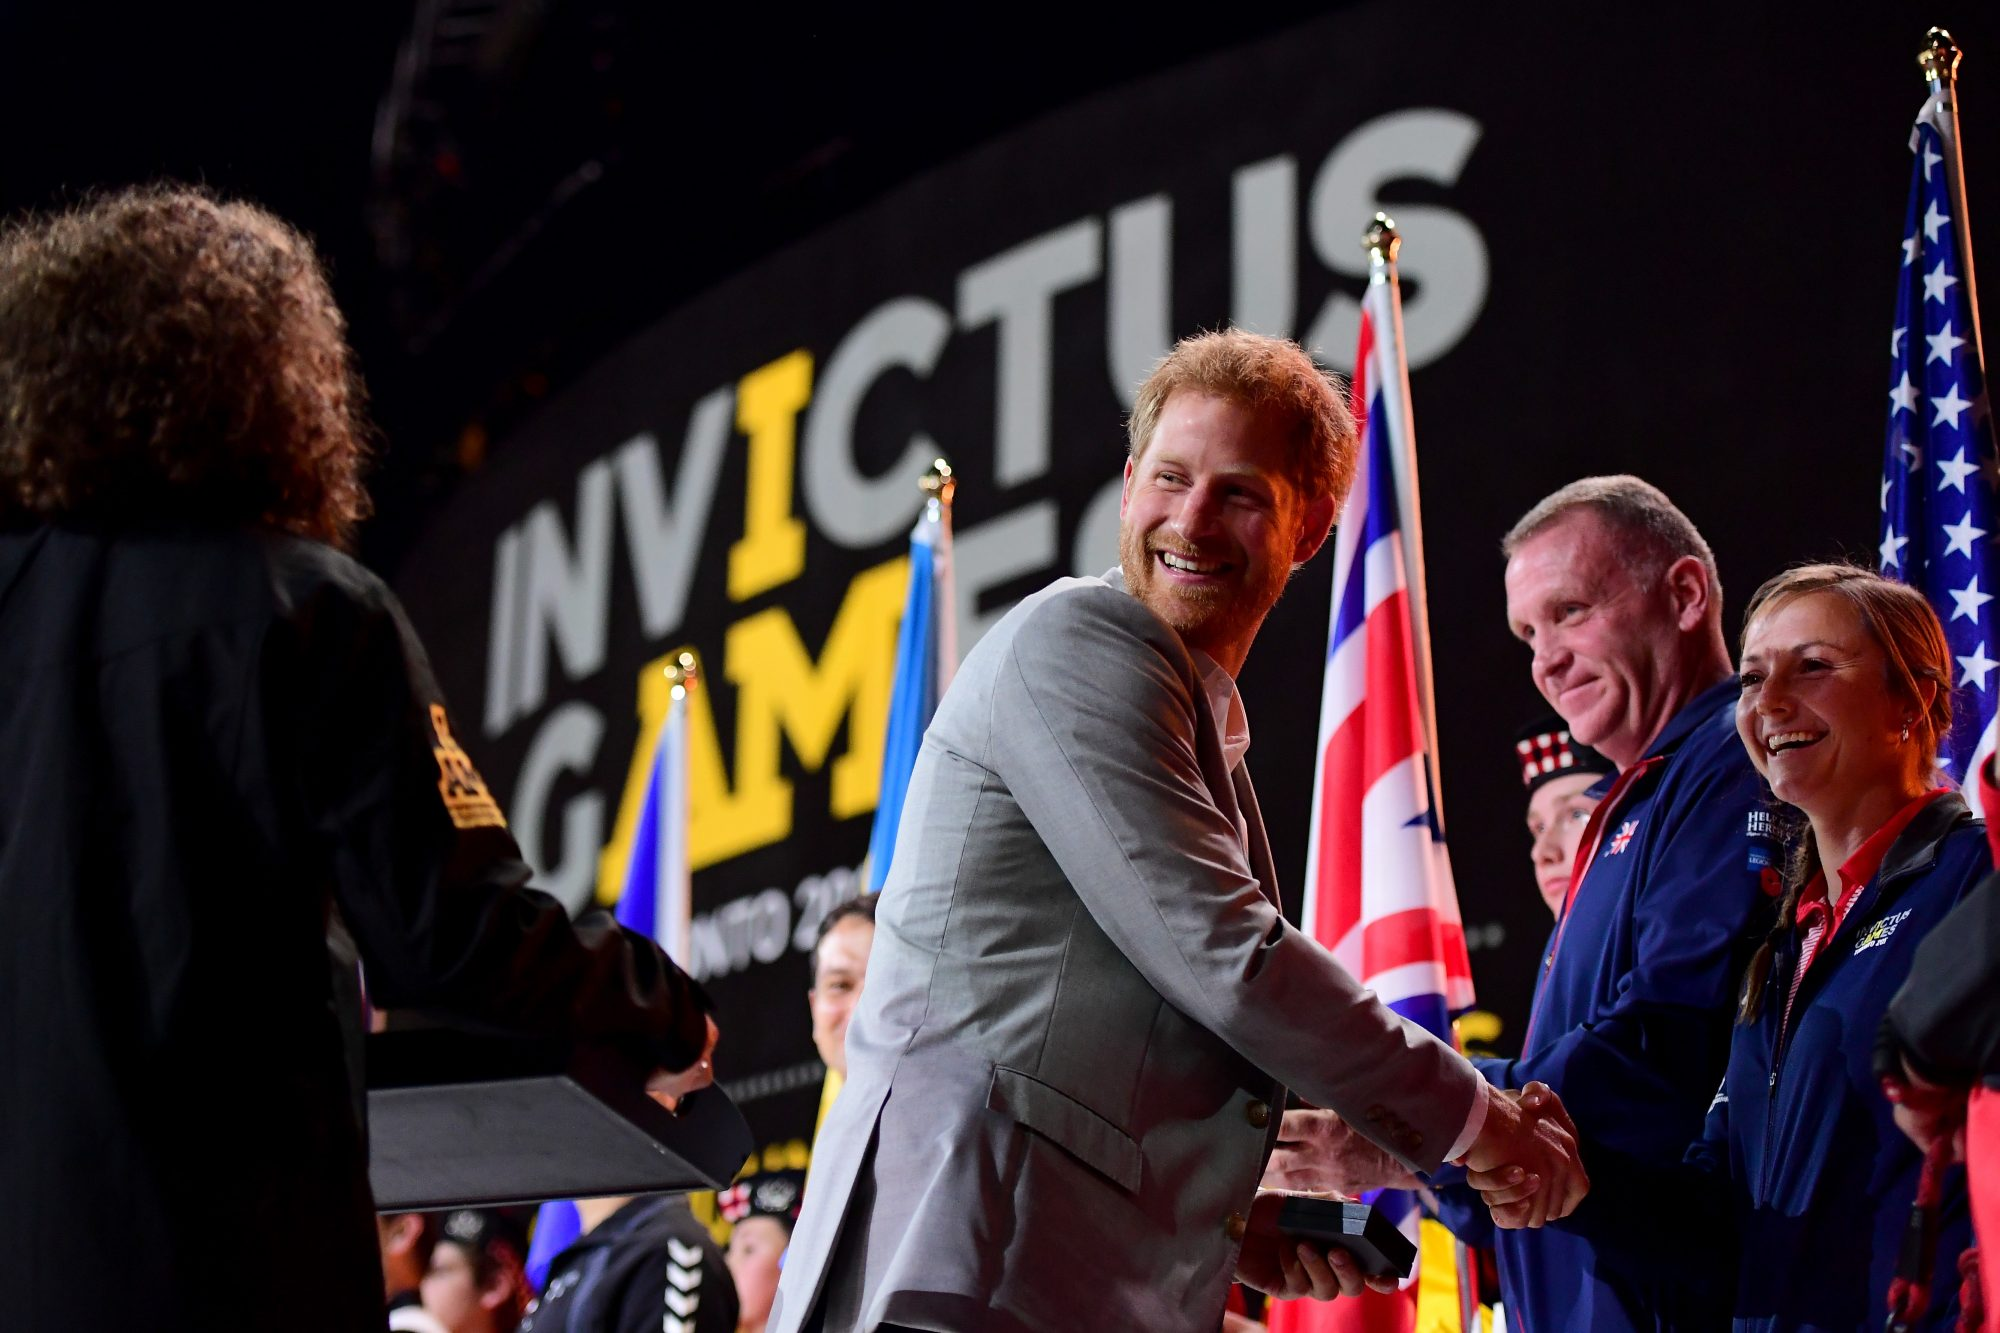 Prince Harry at the Invictus Games Closing Ceremony 2017